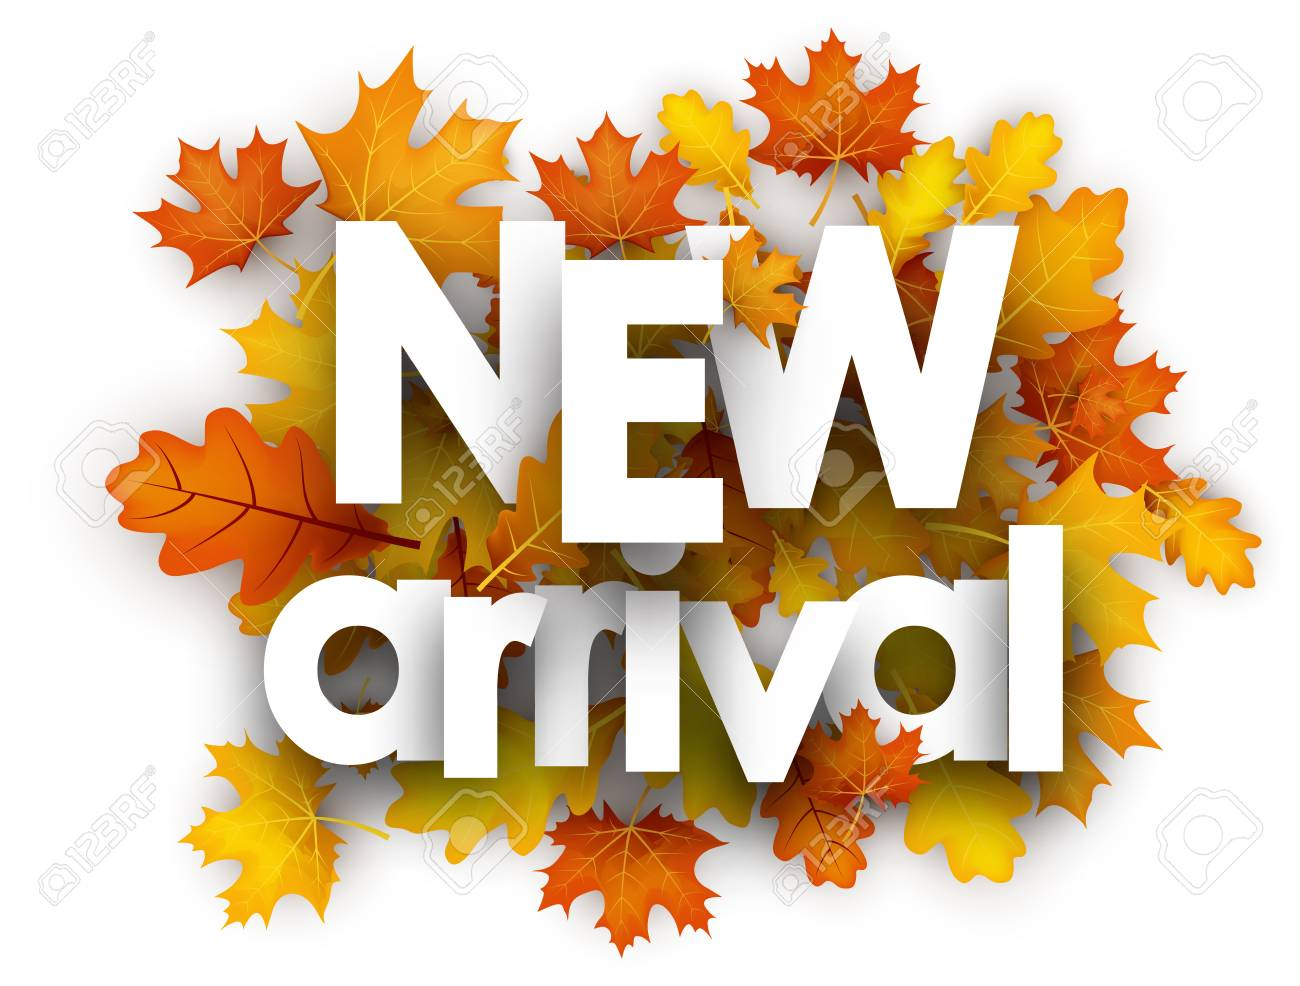 New arrival autumn card with golden maple and oak leaves. Vector illustration. - 84990991